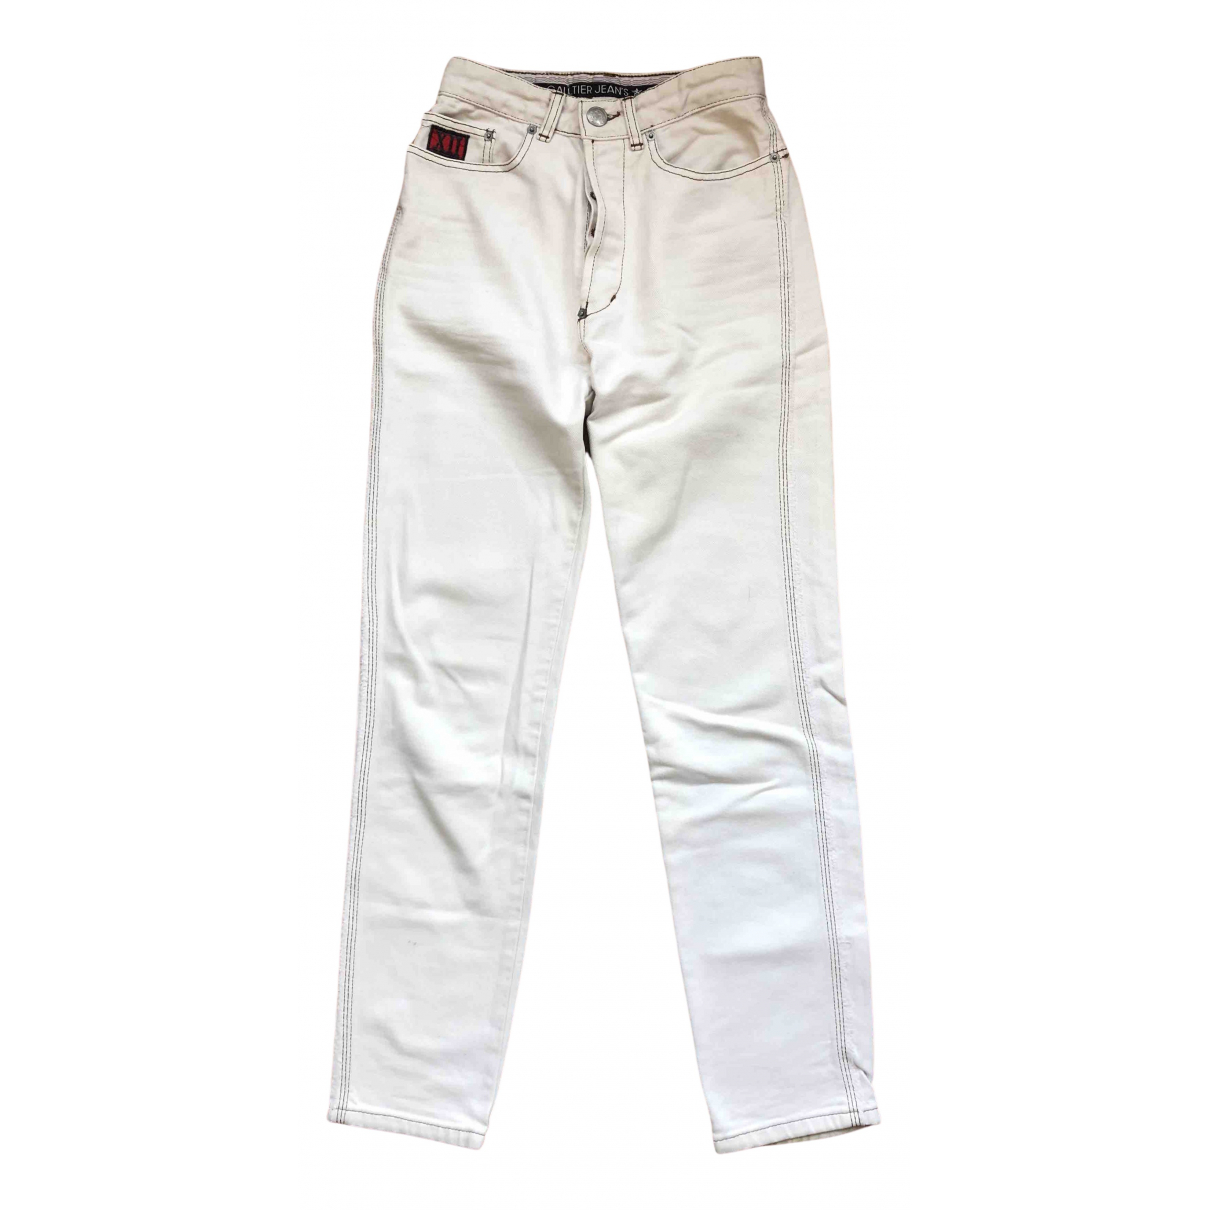 Jean Paul Gaultier \N White Denim - Jeans Jeans for Women 27 US